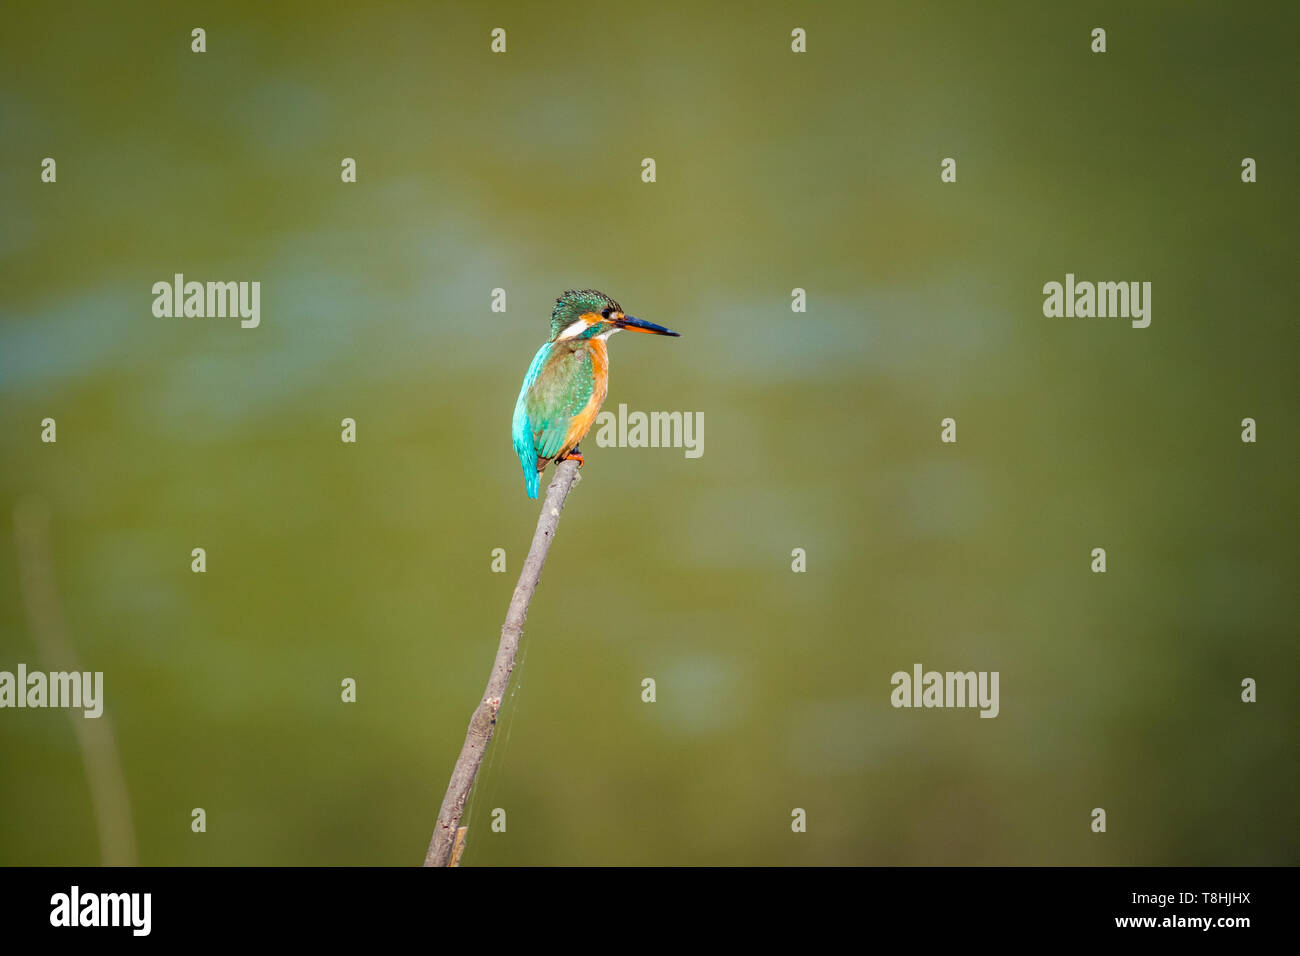 A common kingfisher or Alcedo atthis sitting on a beautiful perch with green background at keoladeo national park, bharatpur, india - Stock Image